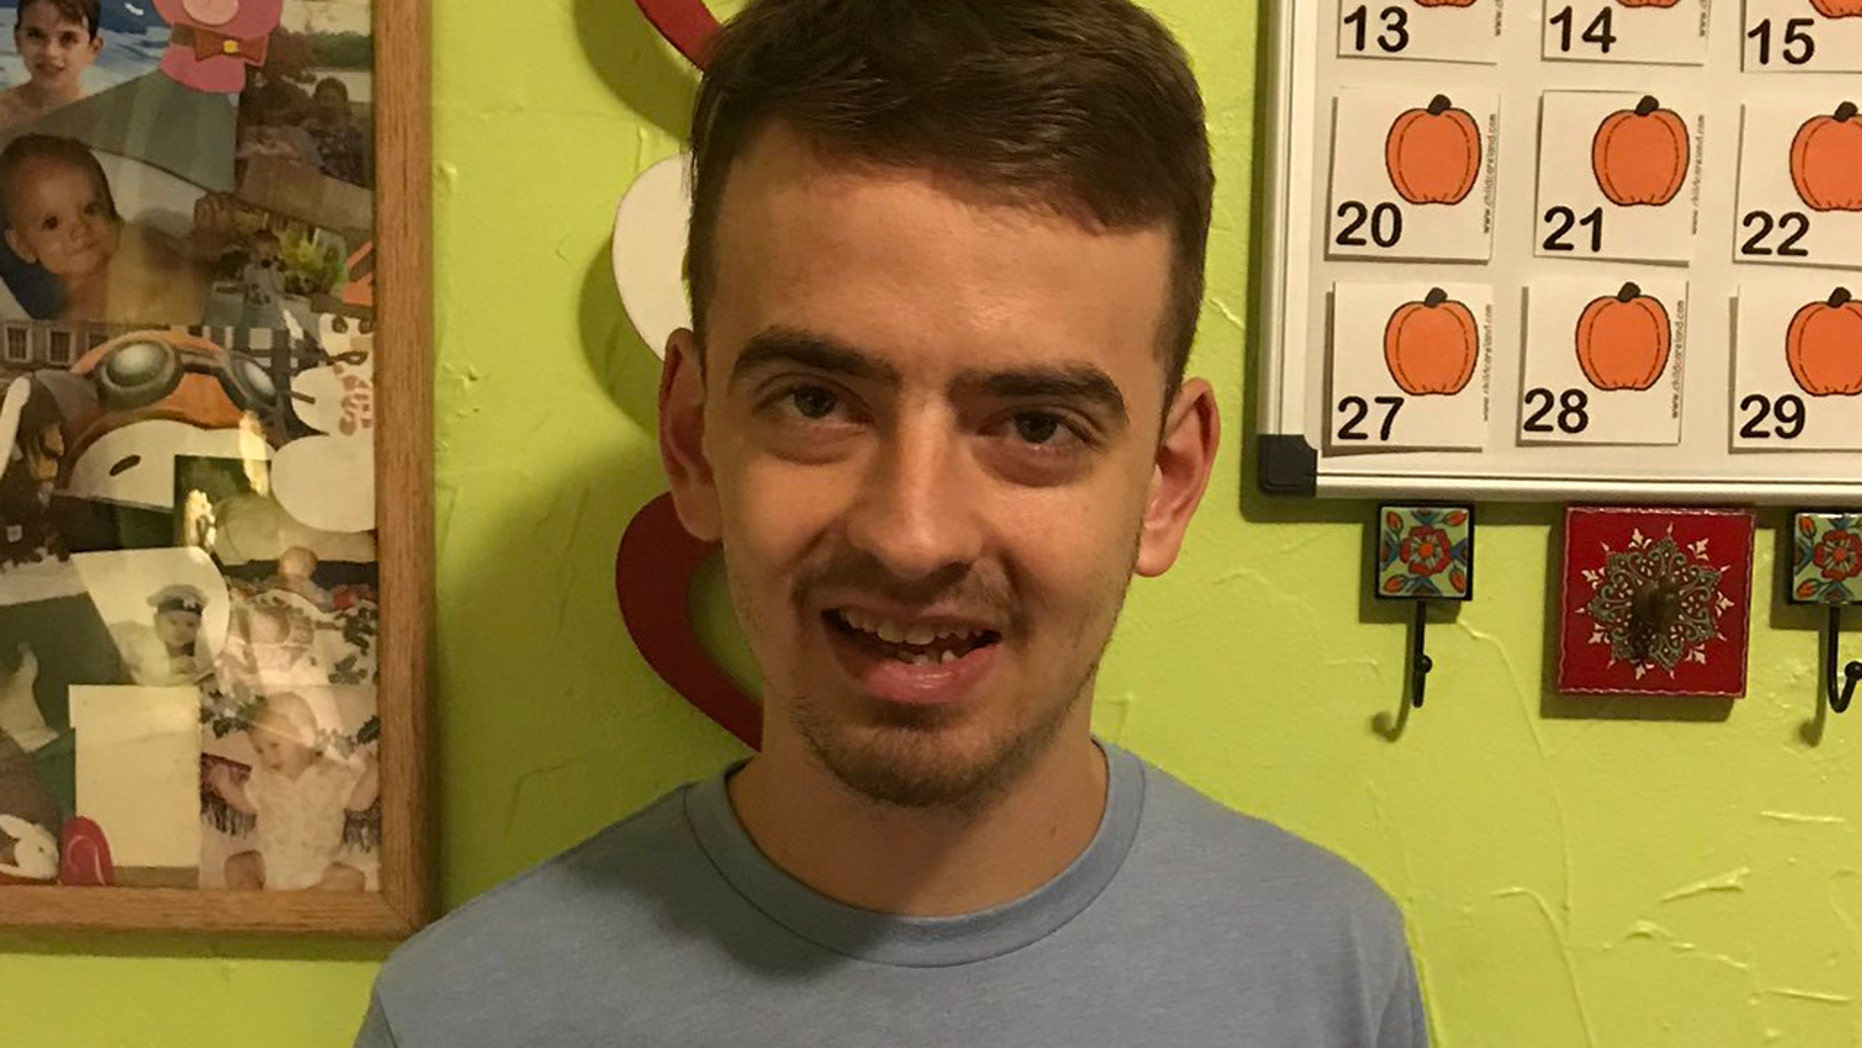 """Kerry Bloch's 21-year-old autistic son, David, receives a ton of support online after asking, """"Would someone like me?"""" (Photo: Courtesy of Kerry Bloch)"""